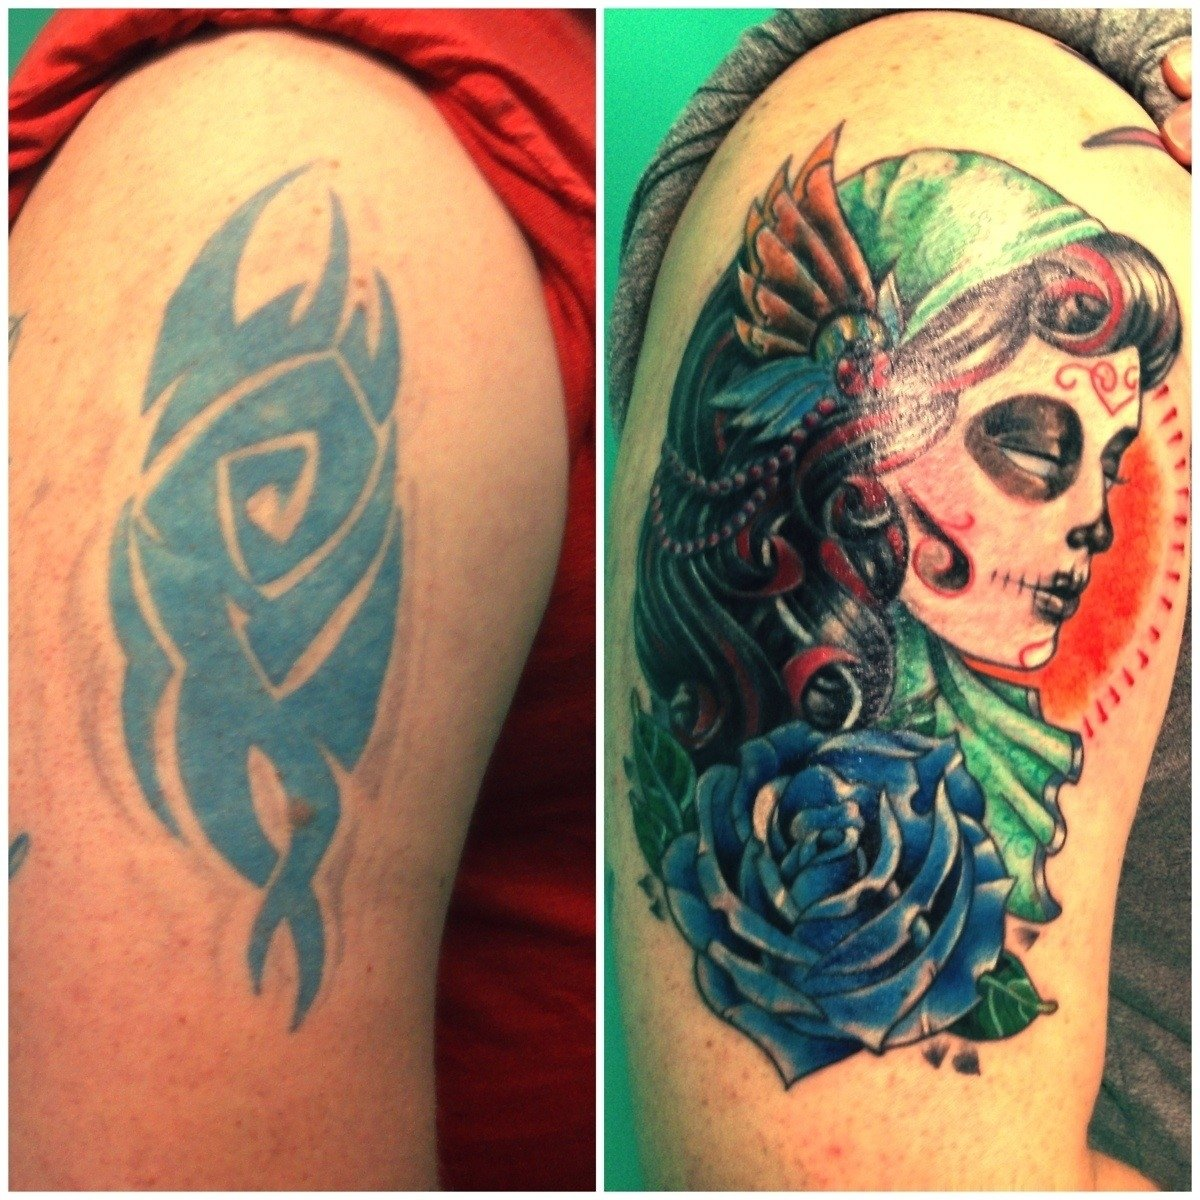 tattoo cover up ideas | tattoo covering, tattoo and ink art